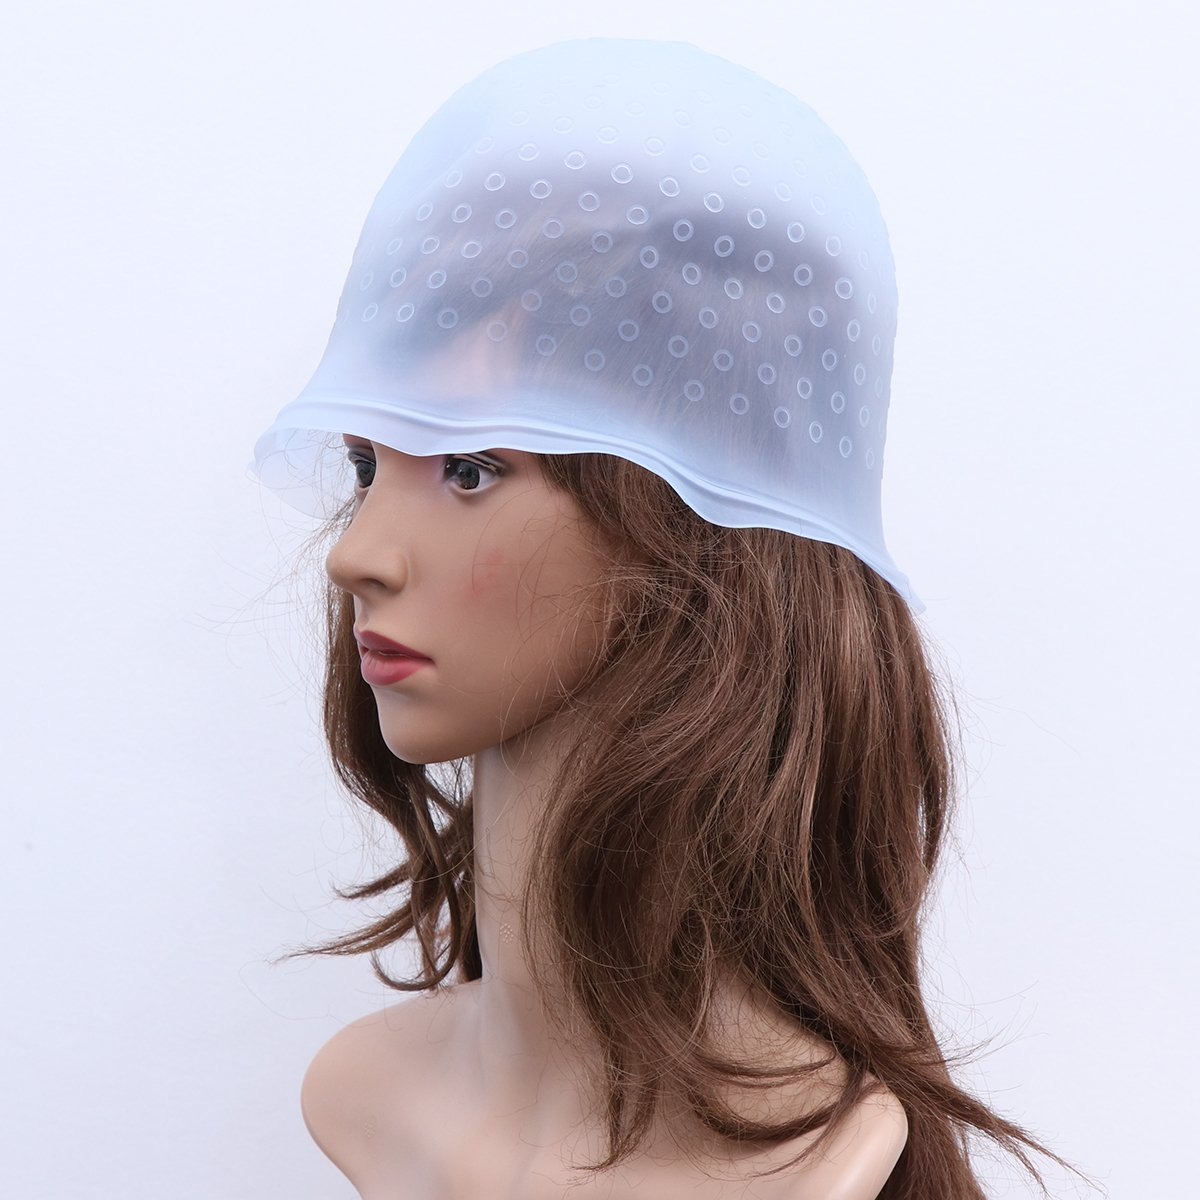 White Healifty Reusable silicone salon hair cap with hook needle elastic highlighting dye cap hair color styling tools